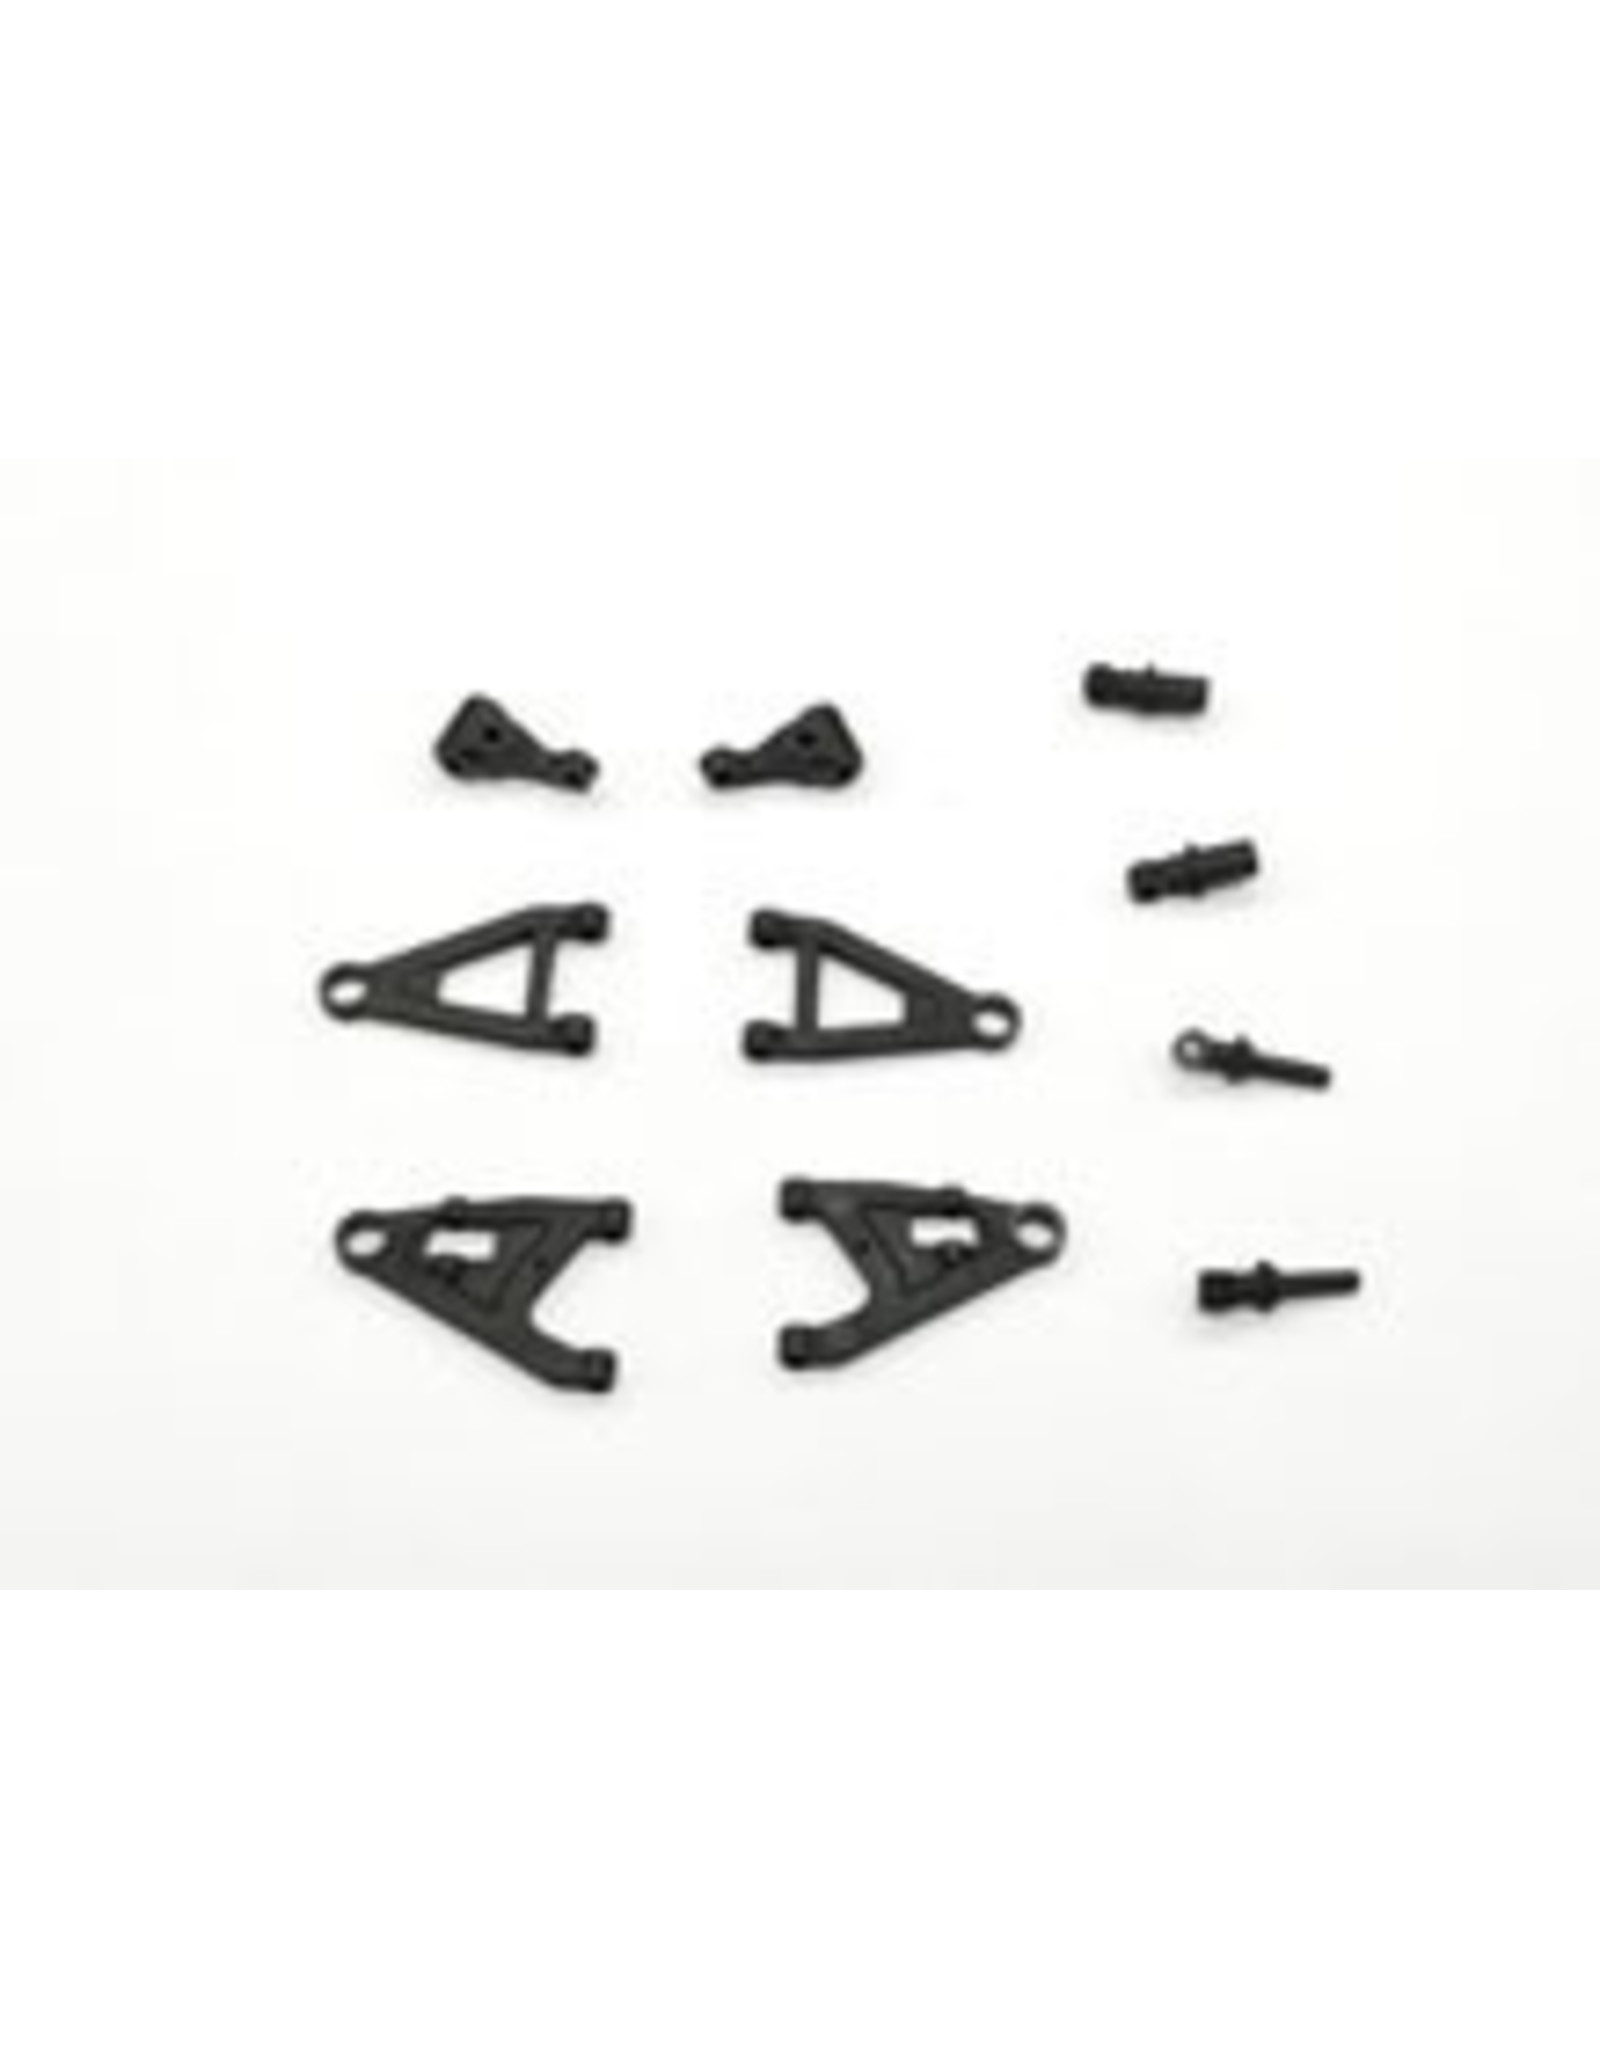 GL Racing GLF-1 UPPER/LOWER ARMS, STEERING KNUCKLE & FRONT SHOCK (GLF-S-005)